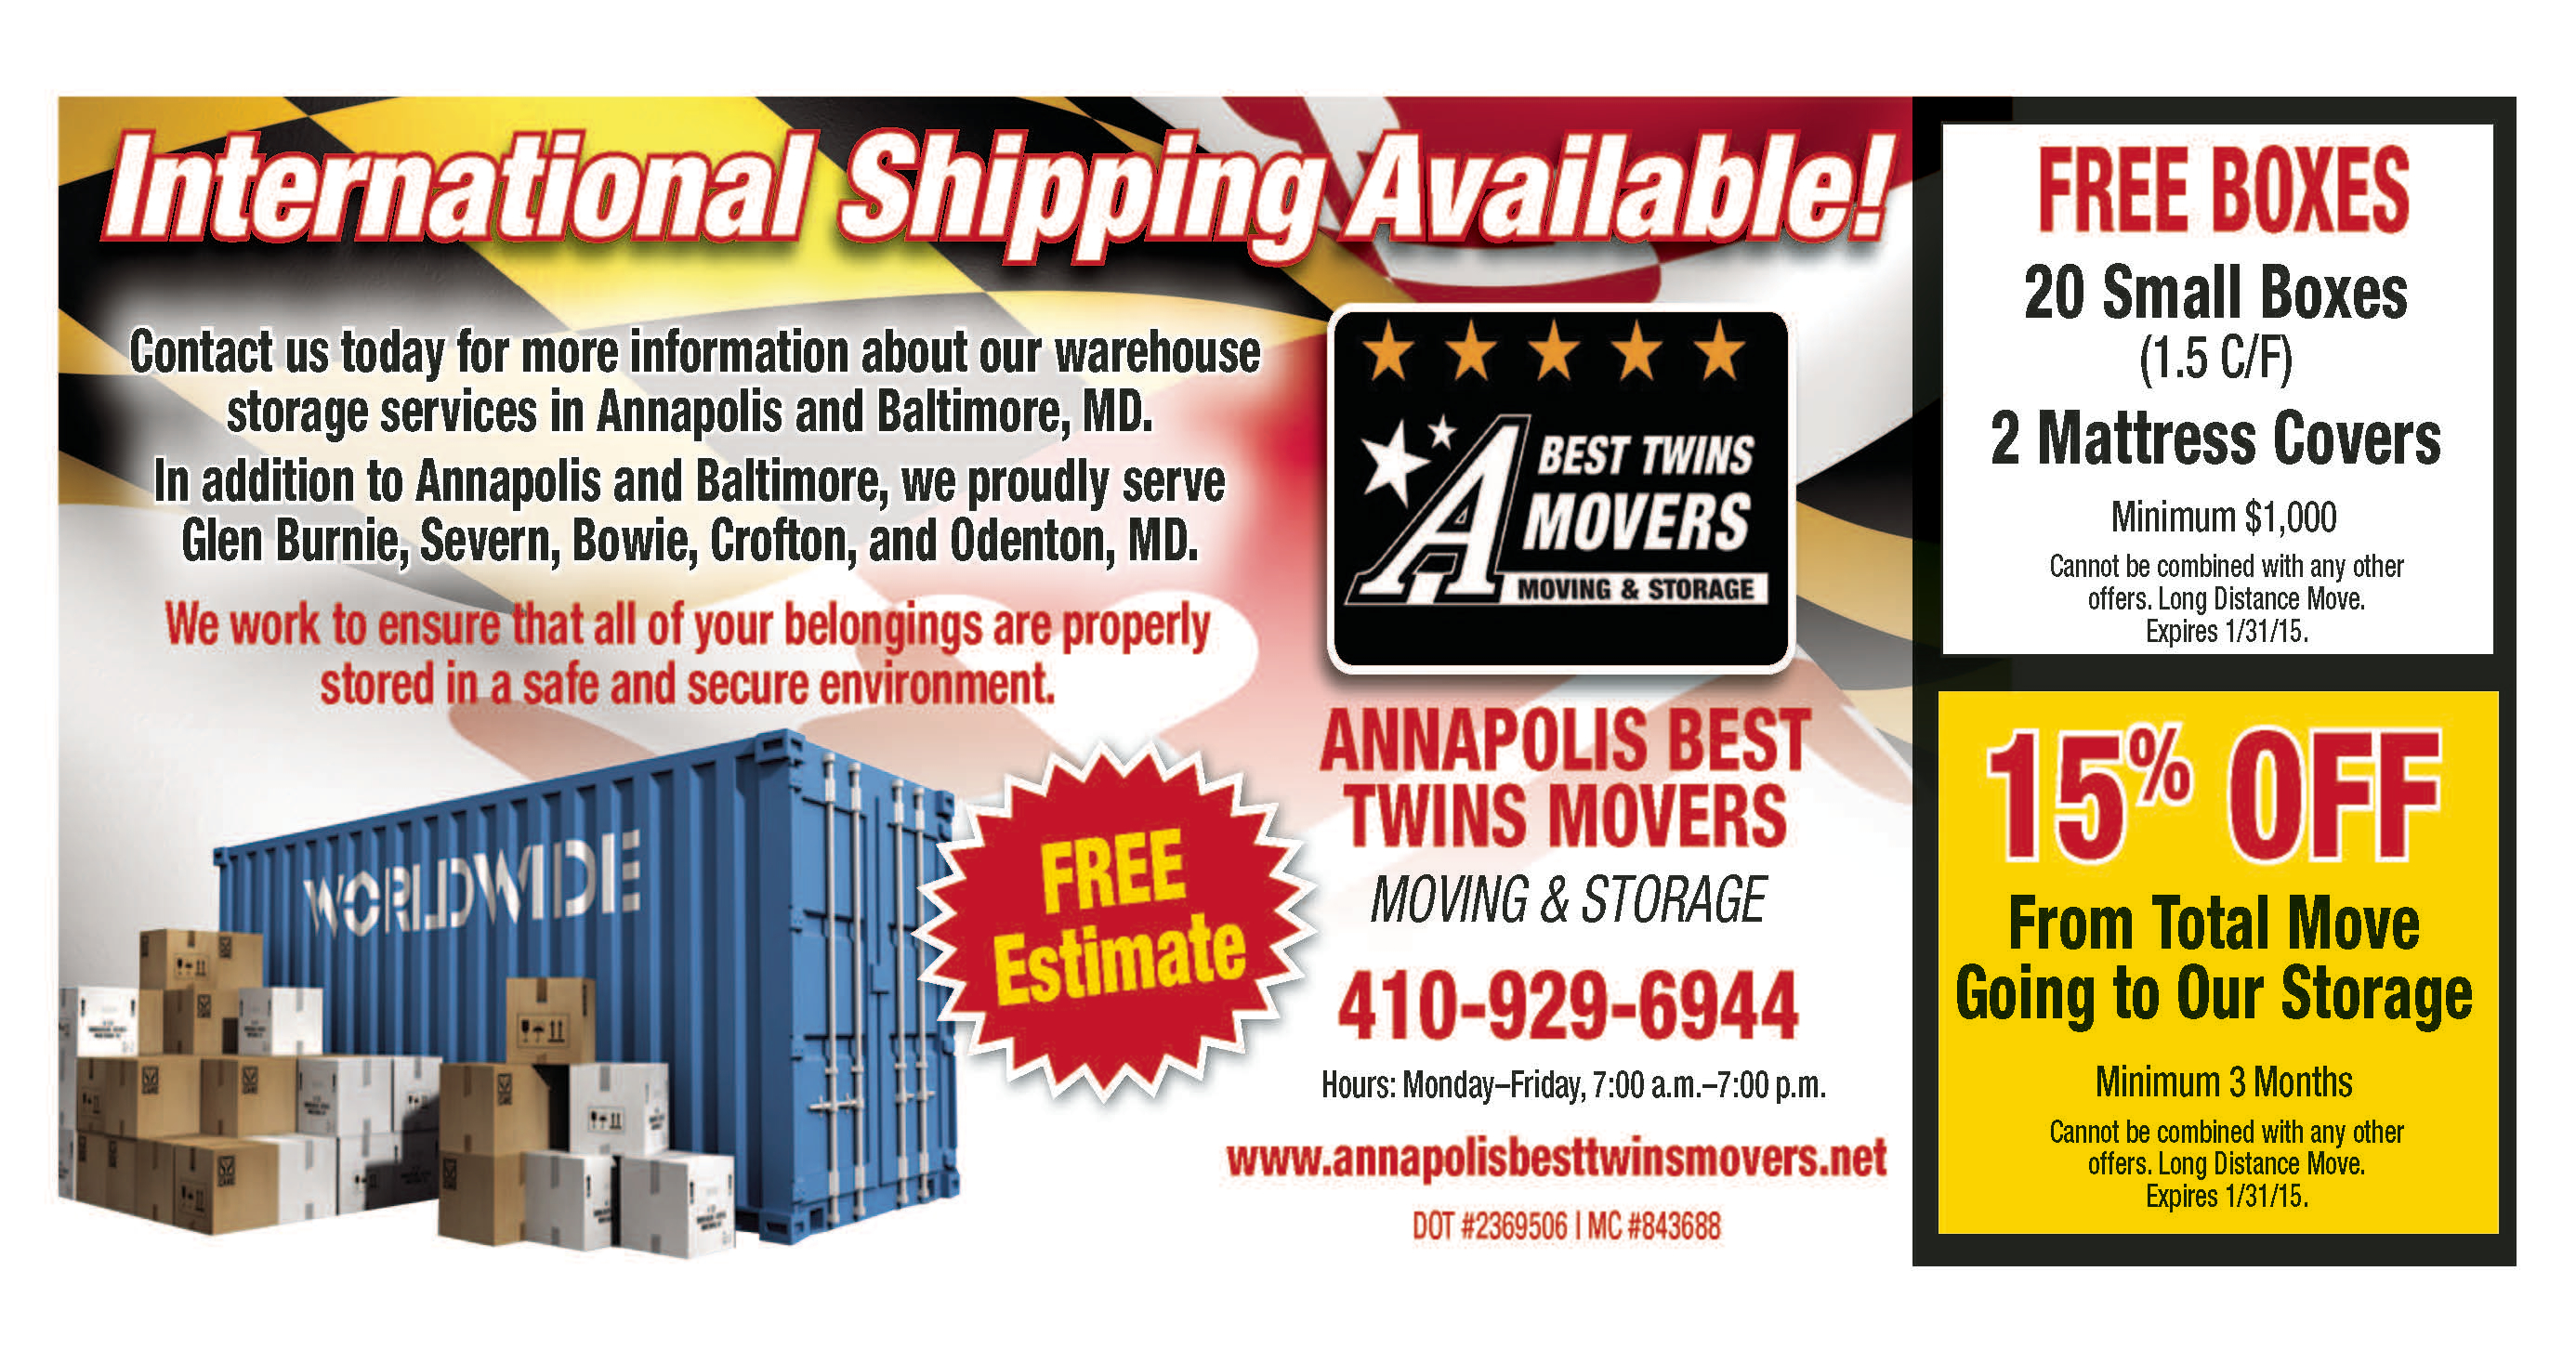 Annapolis Best Twins Movers In Annapolis, Md 21401. Virtual Address To Physical Address. Secure Coding Practices Exchange Email Log In. Urgent Care Santa Clara Rn To Bsn Requirements. Gieco Homeowners Insurance Print Direct Mail. National Appliance Repair Ge Ultrasound Sales. Bond University Reviews Epilepsy And Caffeine. Internet Provider Near Me Help With Financing. Business Continuity Companies